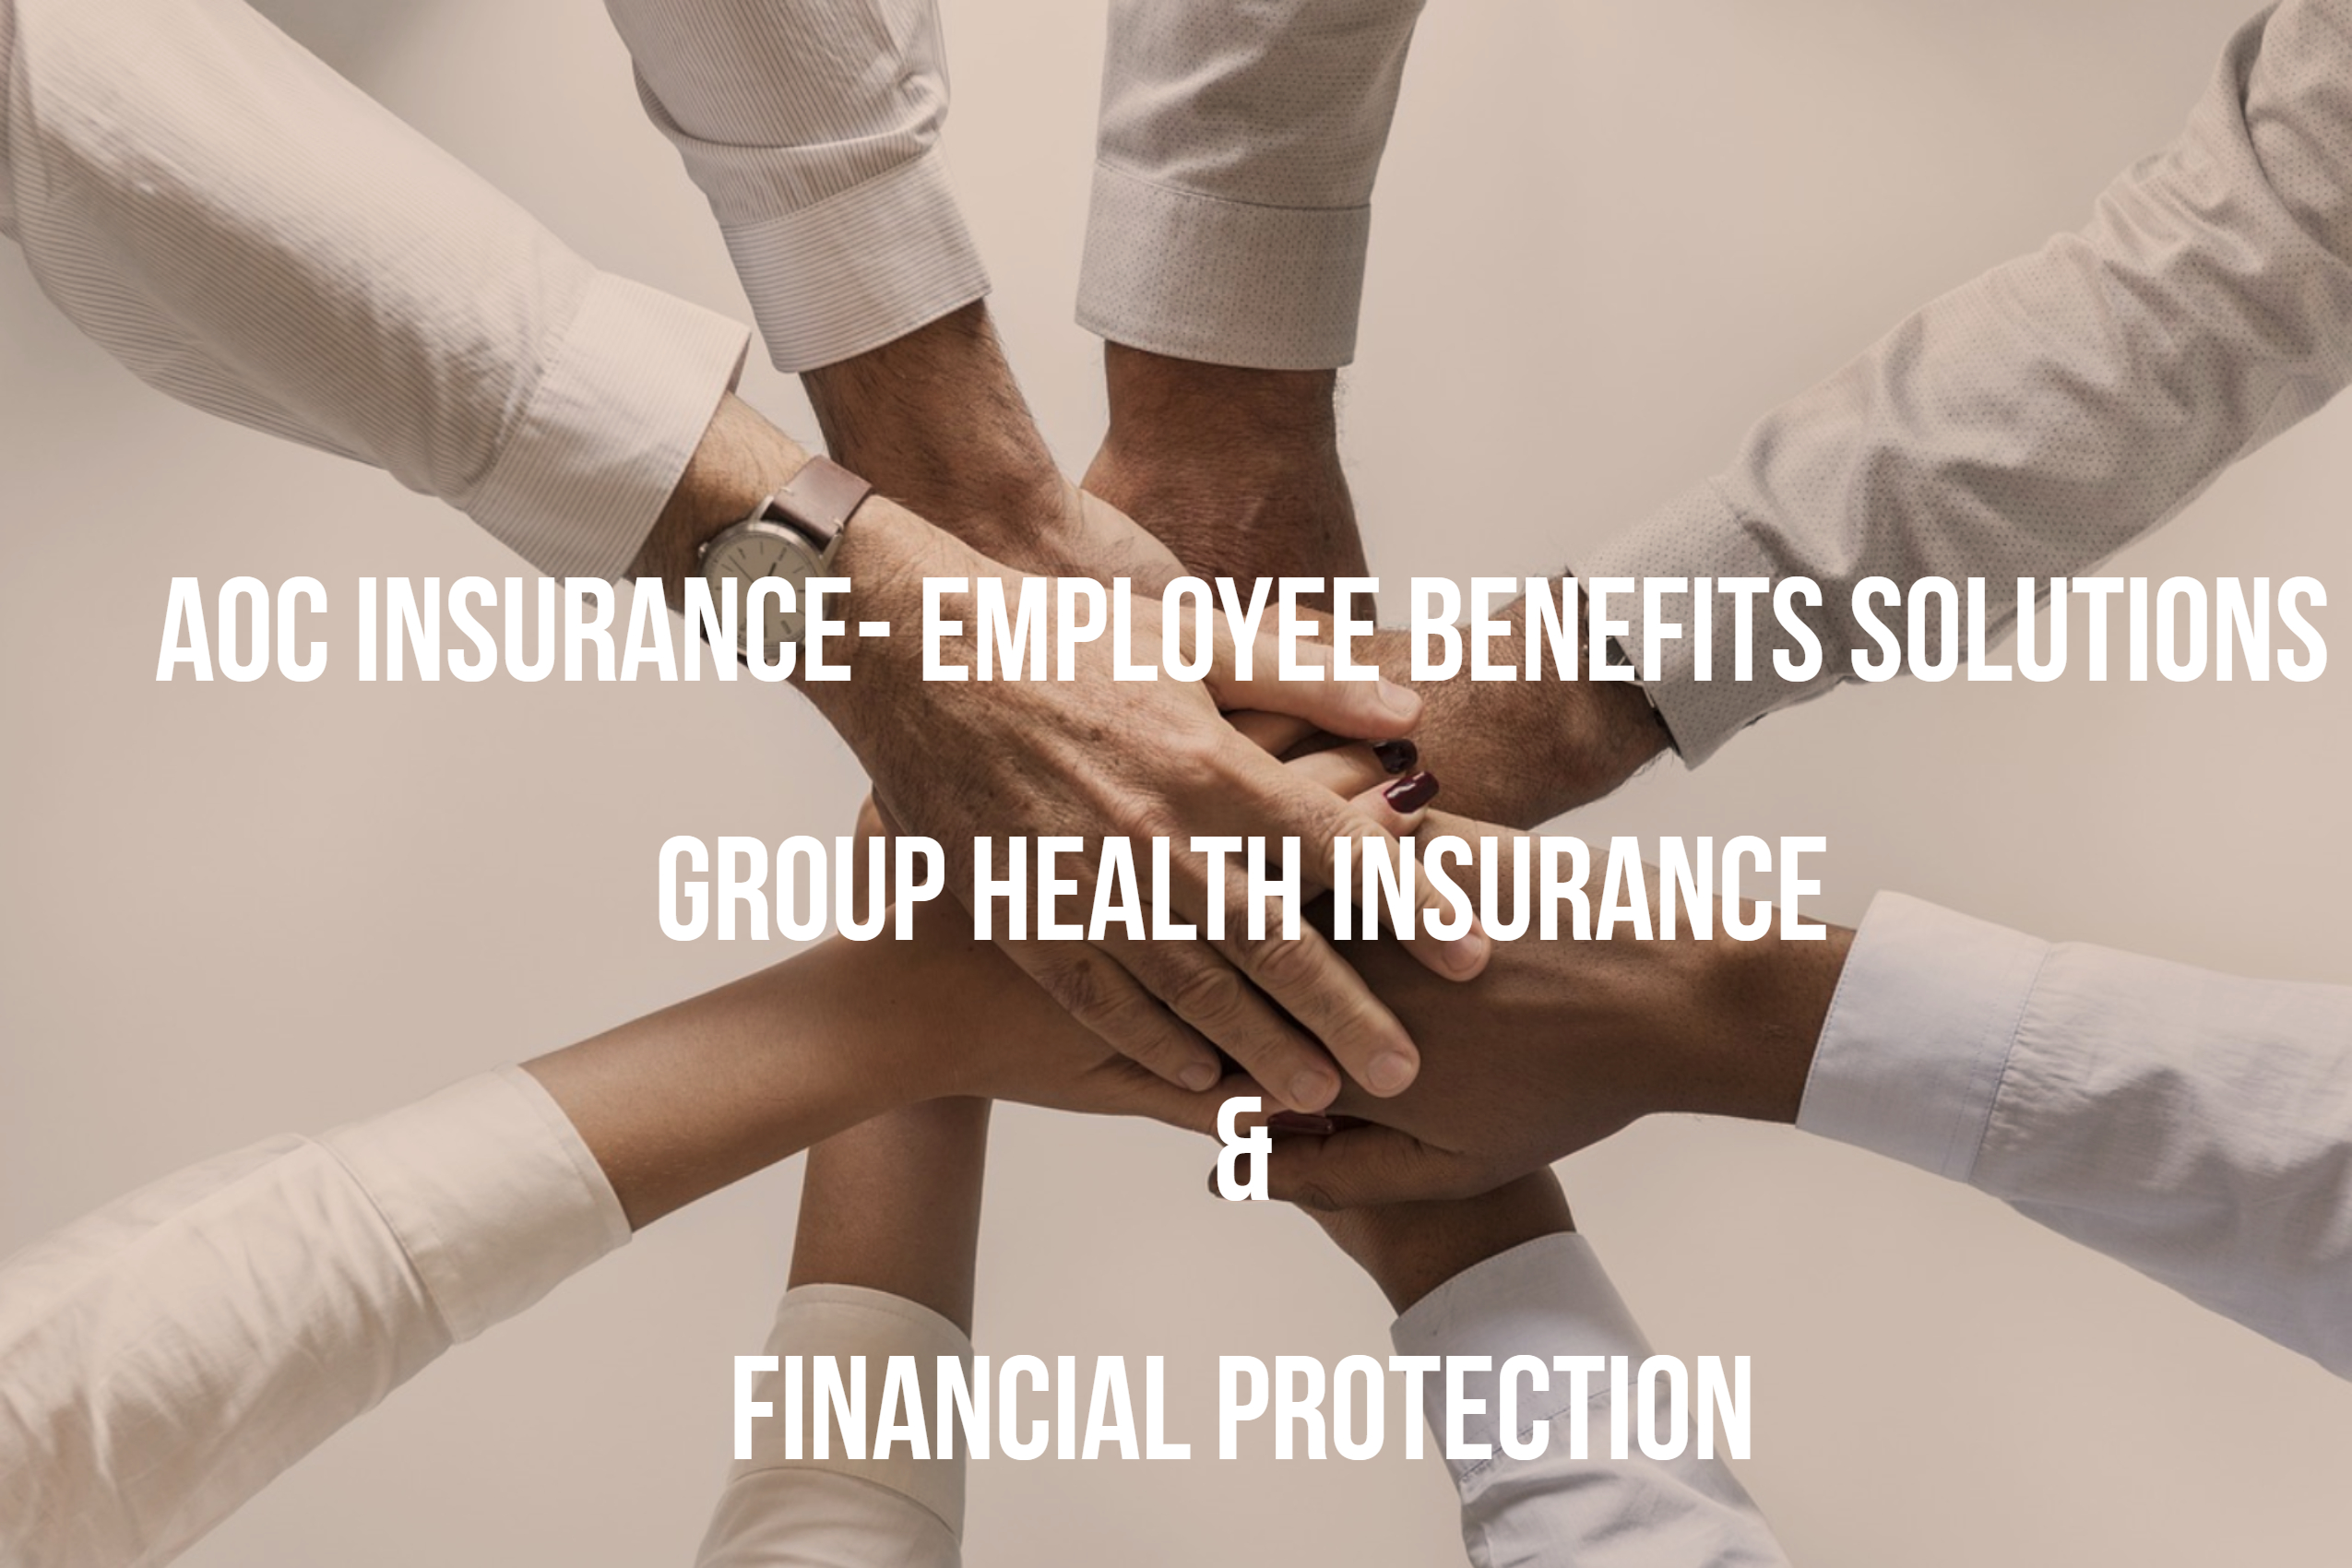 Aoc_insurance_employees_benefits_group_health_insurance.jpg